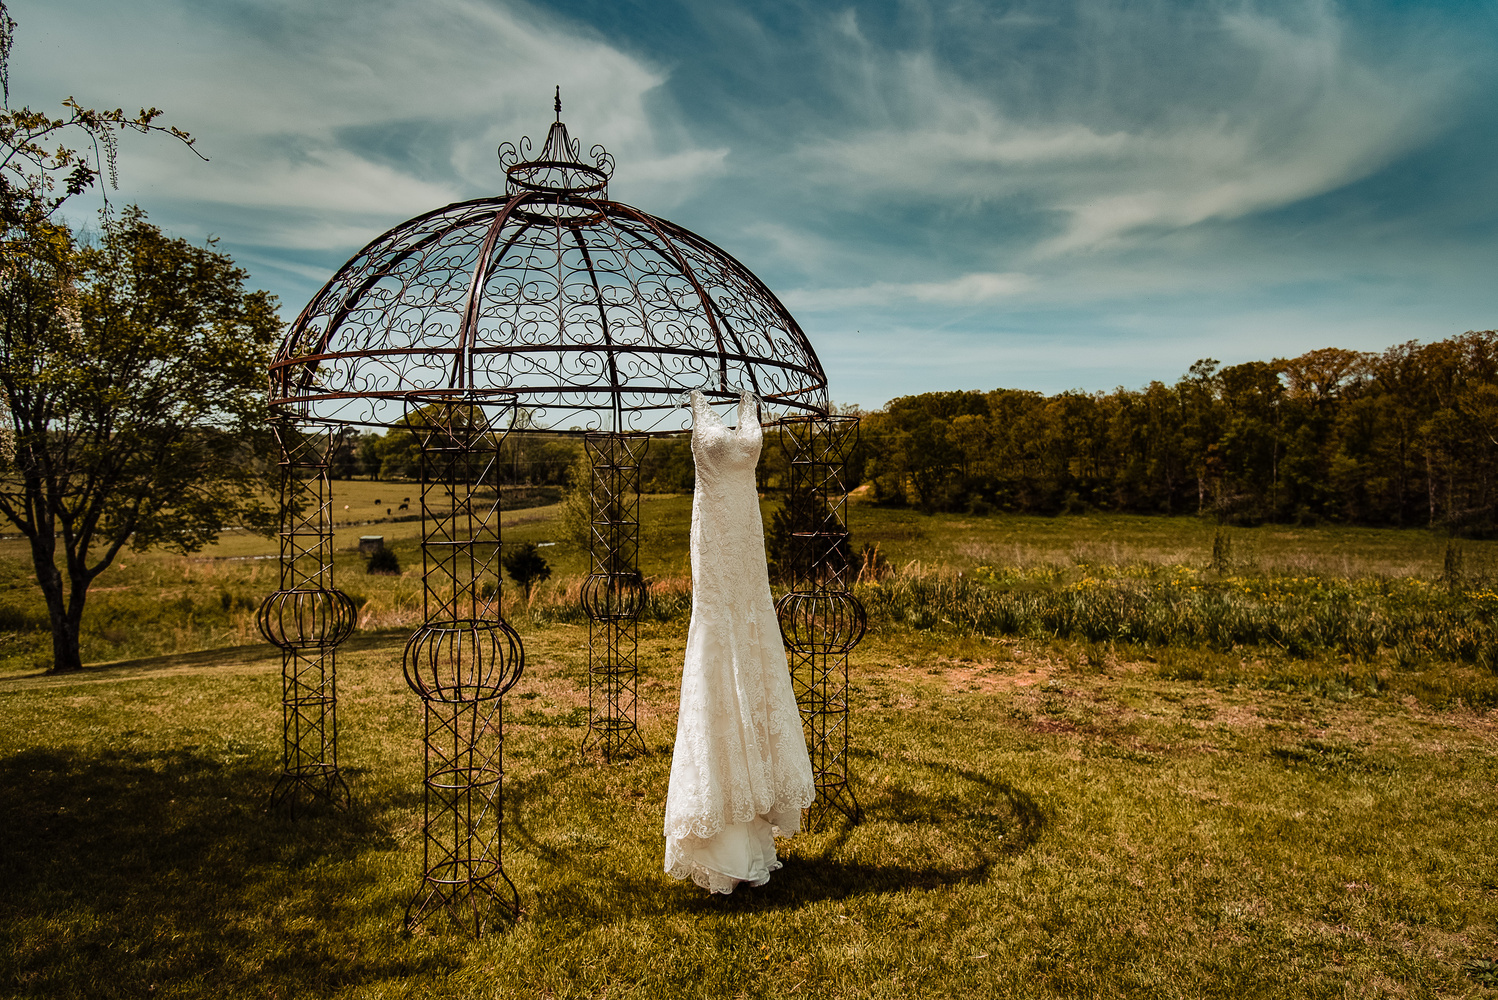 The Iconic Wedding Dress by Bill Wells